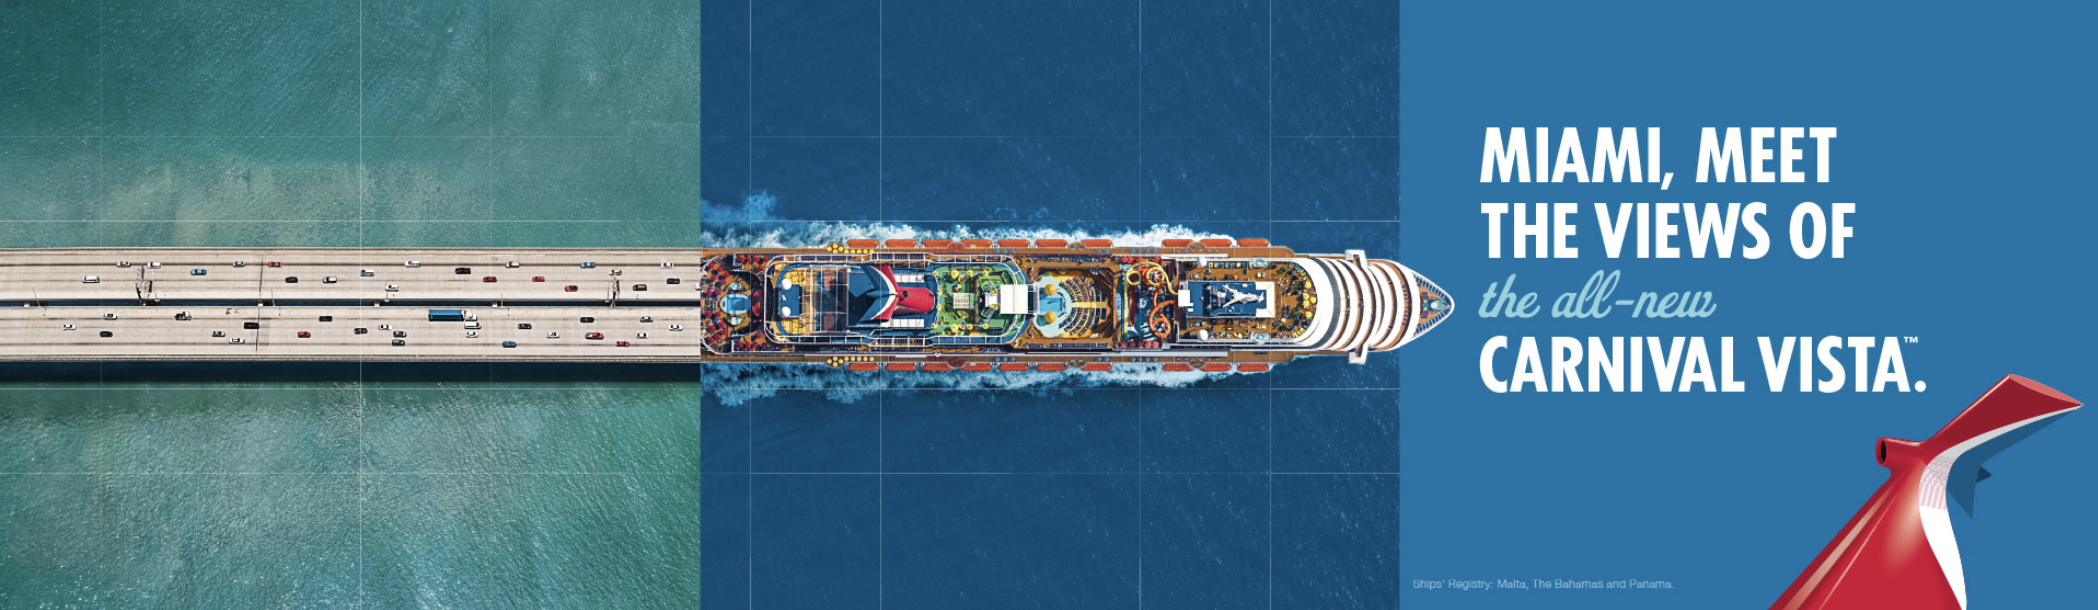 Carnival_Cruise_PhotoProducer_002.png